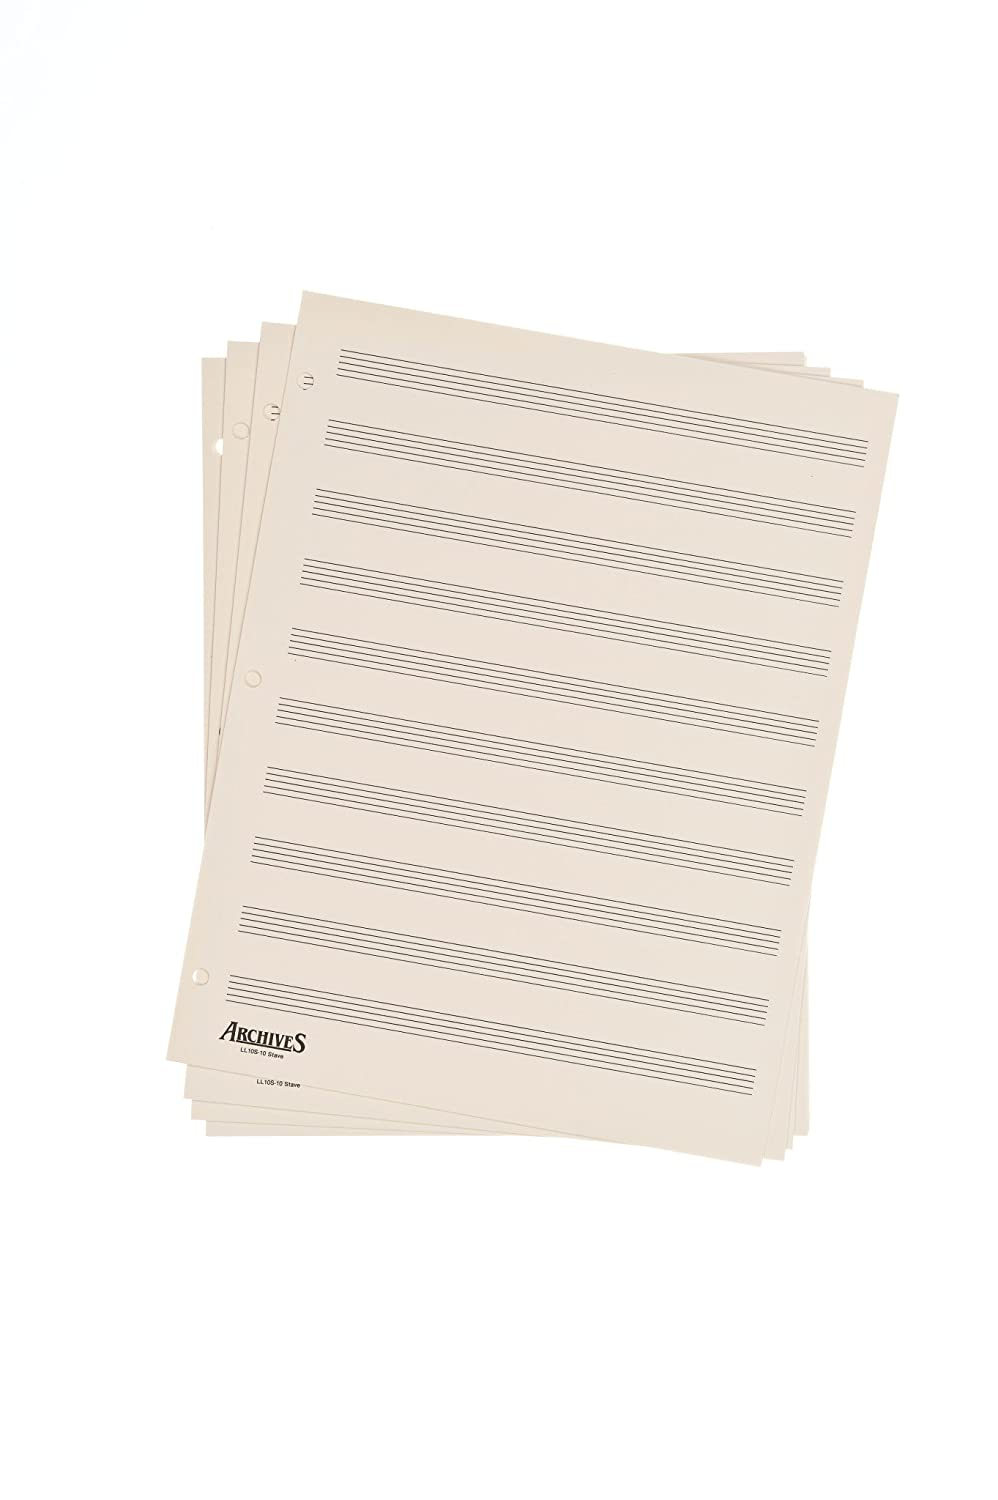 Archives Looseleaf Manuscript Paper, 10 Stave, 50 Pages D'Addario UK Ltd LL10S